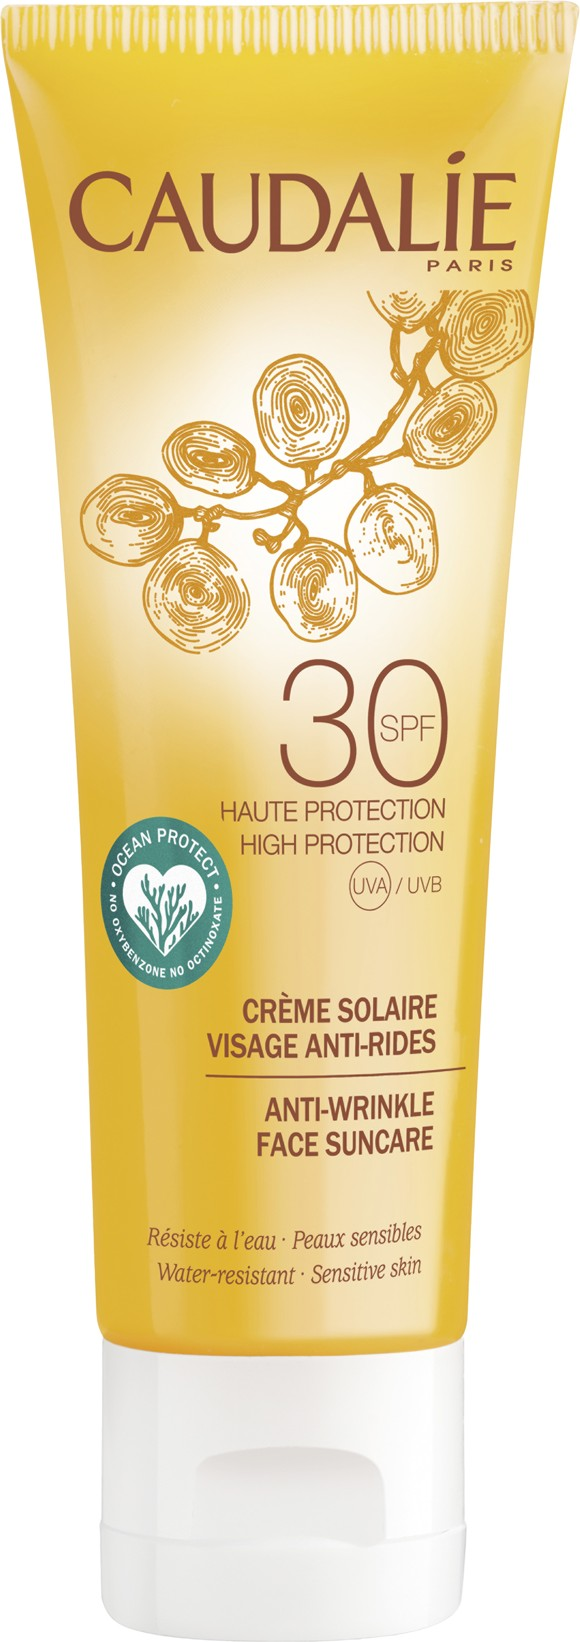 Caudalie - Anti-wrinkle Face Suncare SPF 30 50 ml